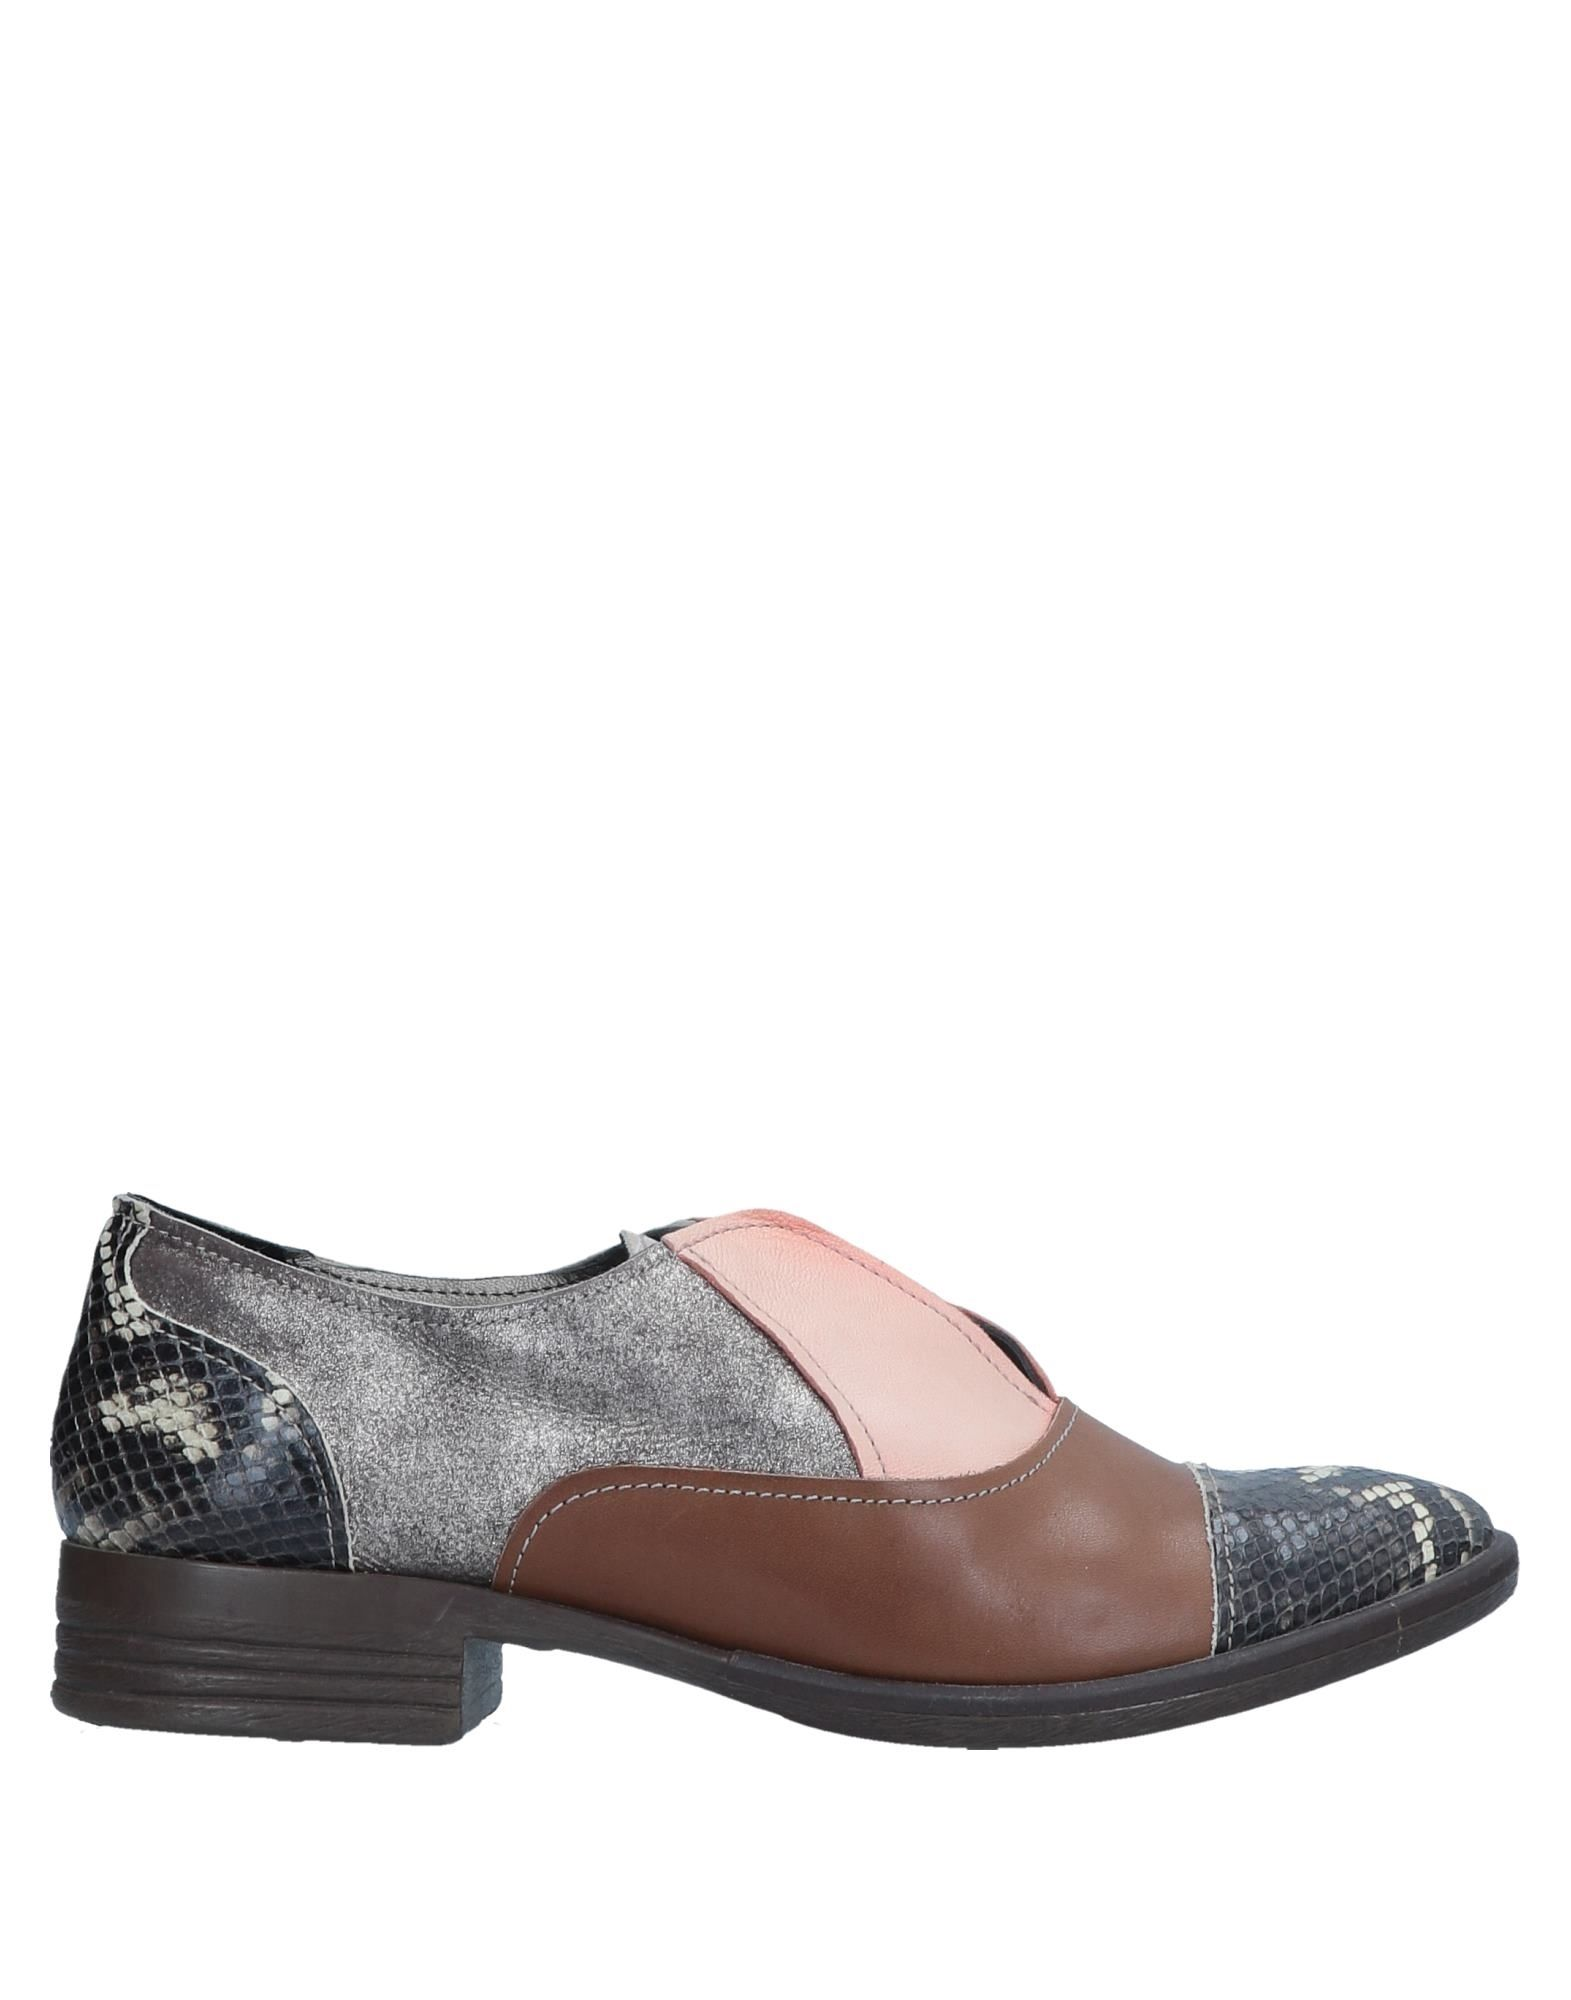 Mocassino Ebarrito Donna - 11552181MP elegante